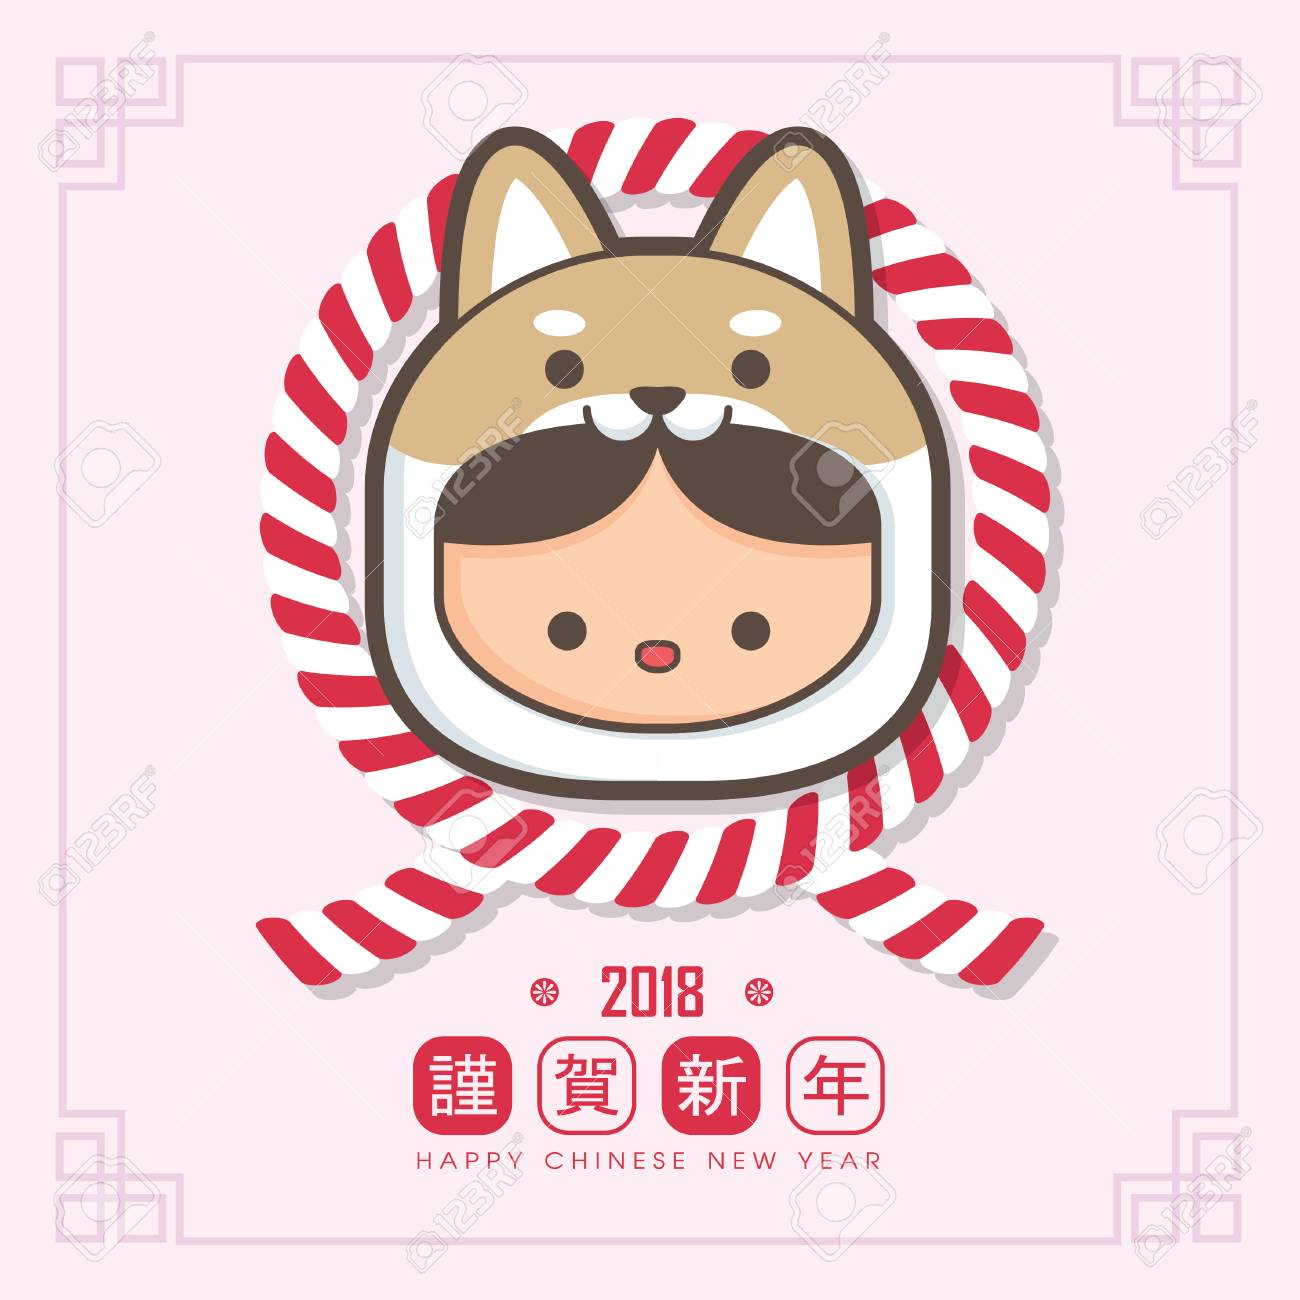 2018 Chinese New Year Year Of Dog Greeting Card Template Cute